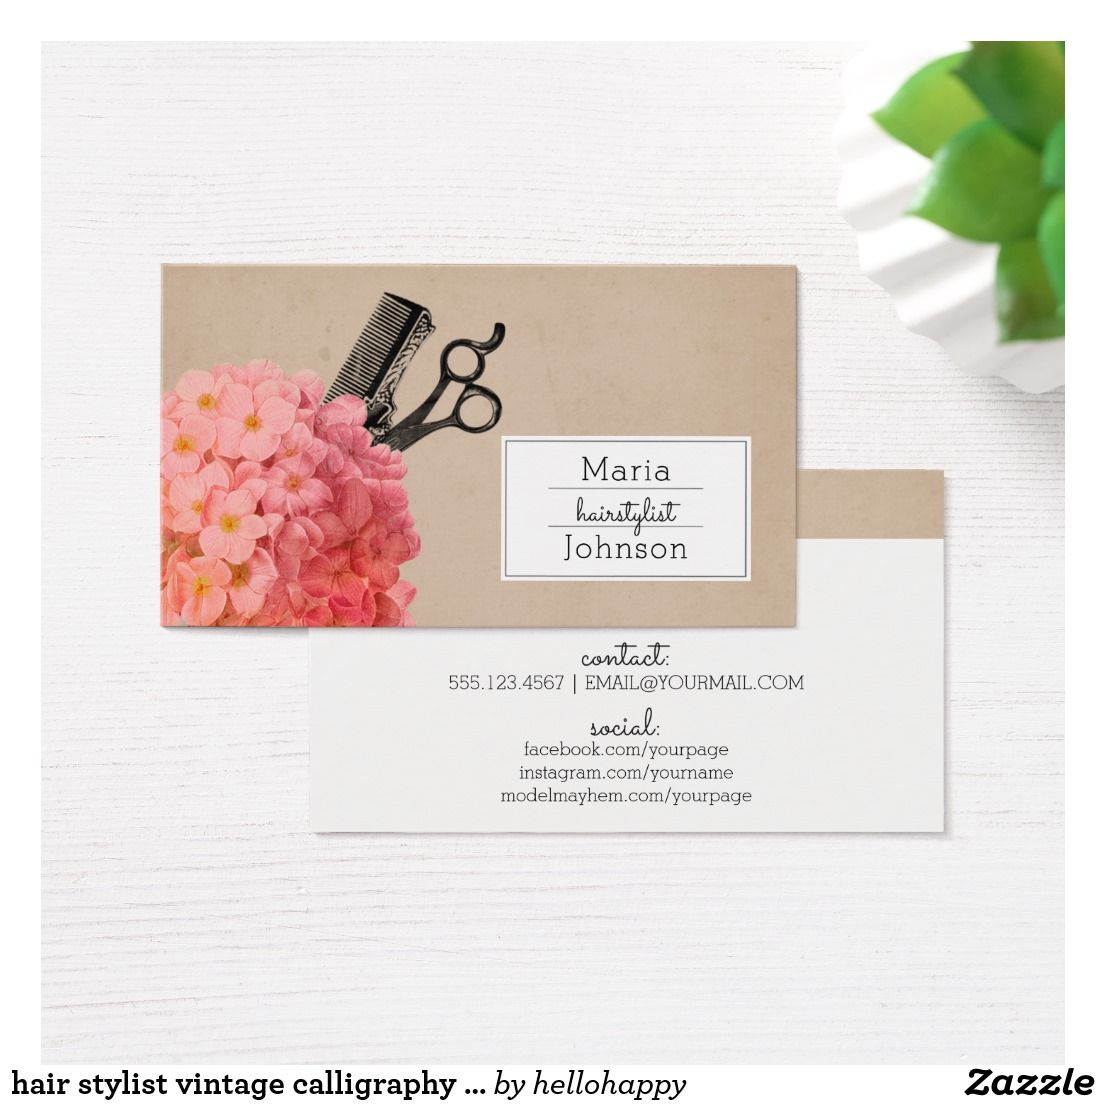 hair stylist vintage calligraphy hairstylist business card ...